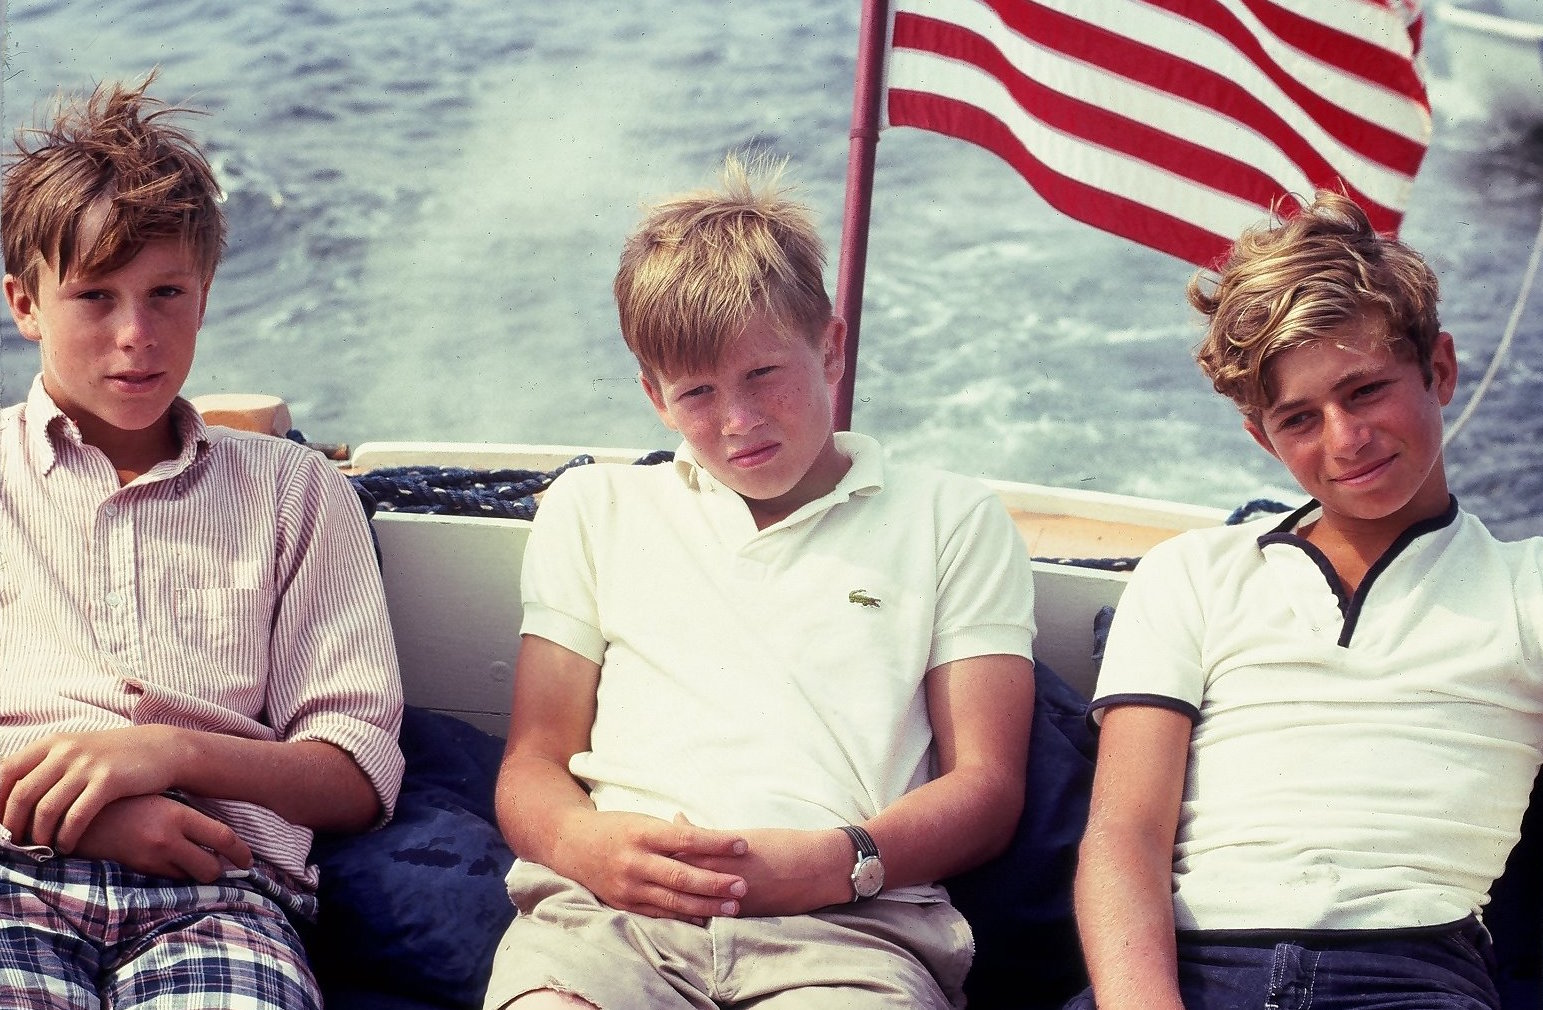 Charlie (right) and two friends out on a boat ride – Courtesy of James Reynolds